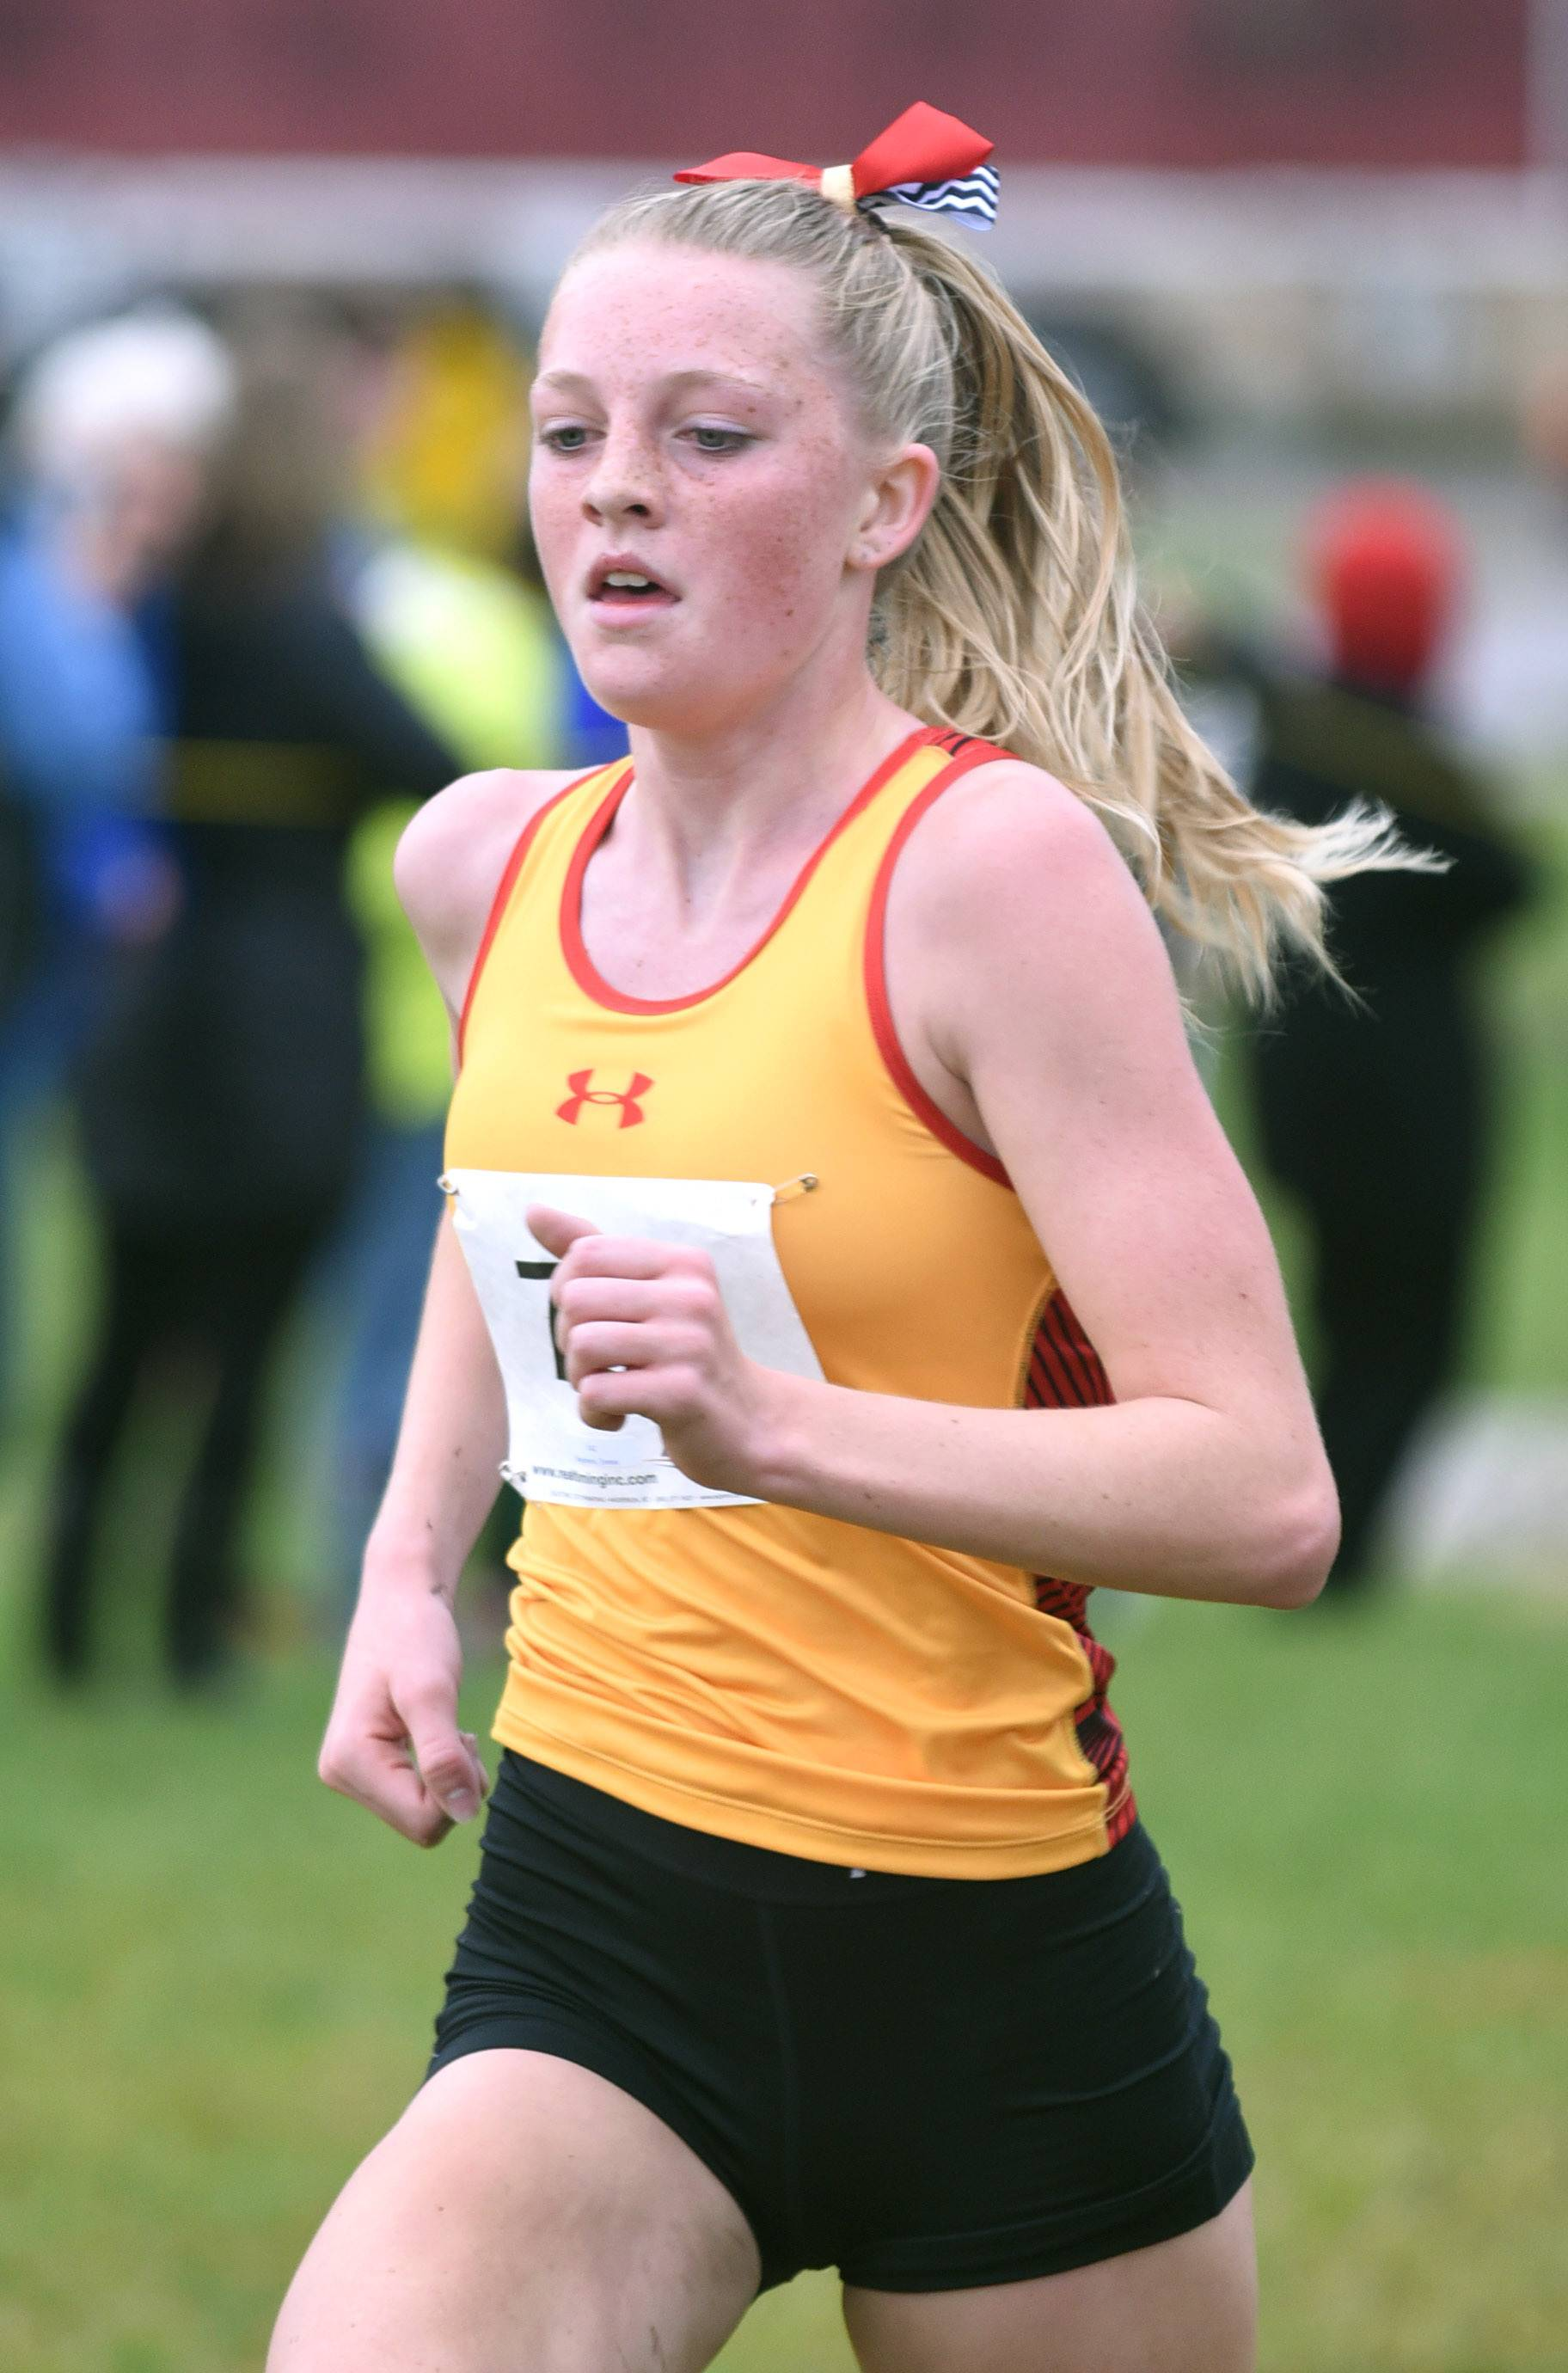 Batavia's Emma Stephens takes second place in the girls varsity race with a time of 18:18.4 at the St. Charles North cross country regional on Saturday.